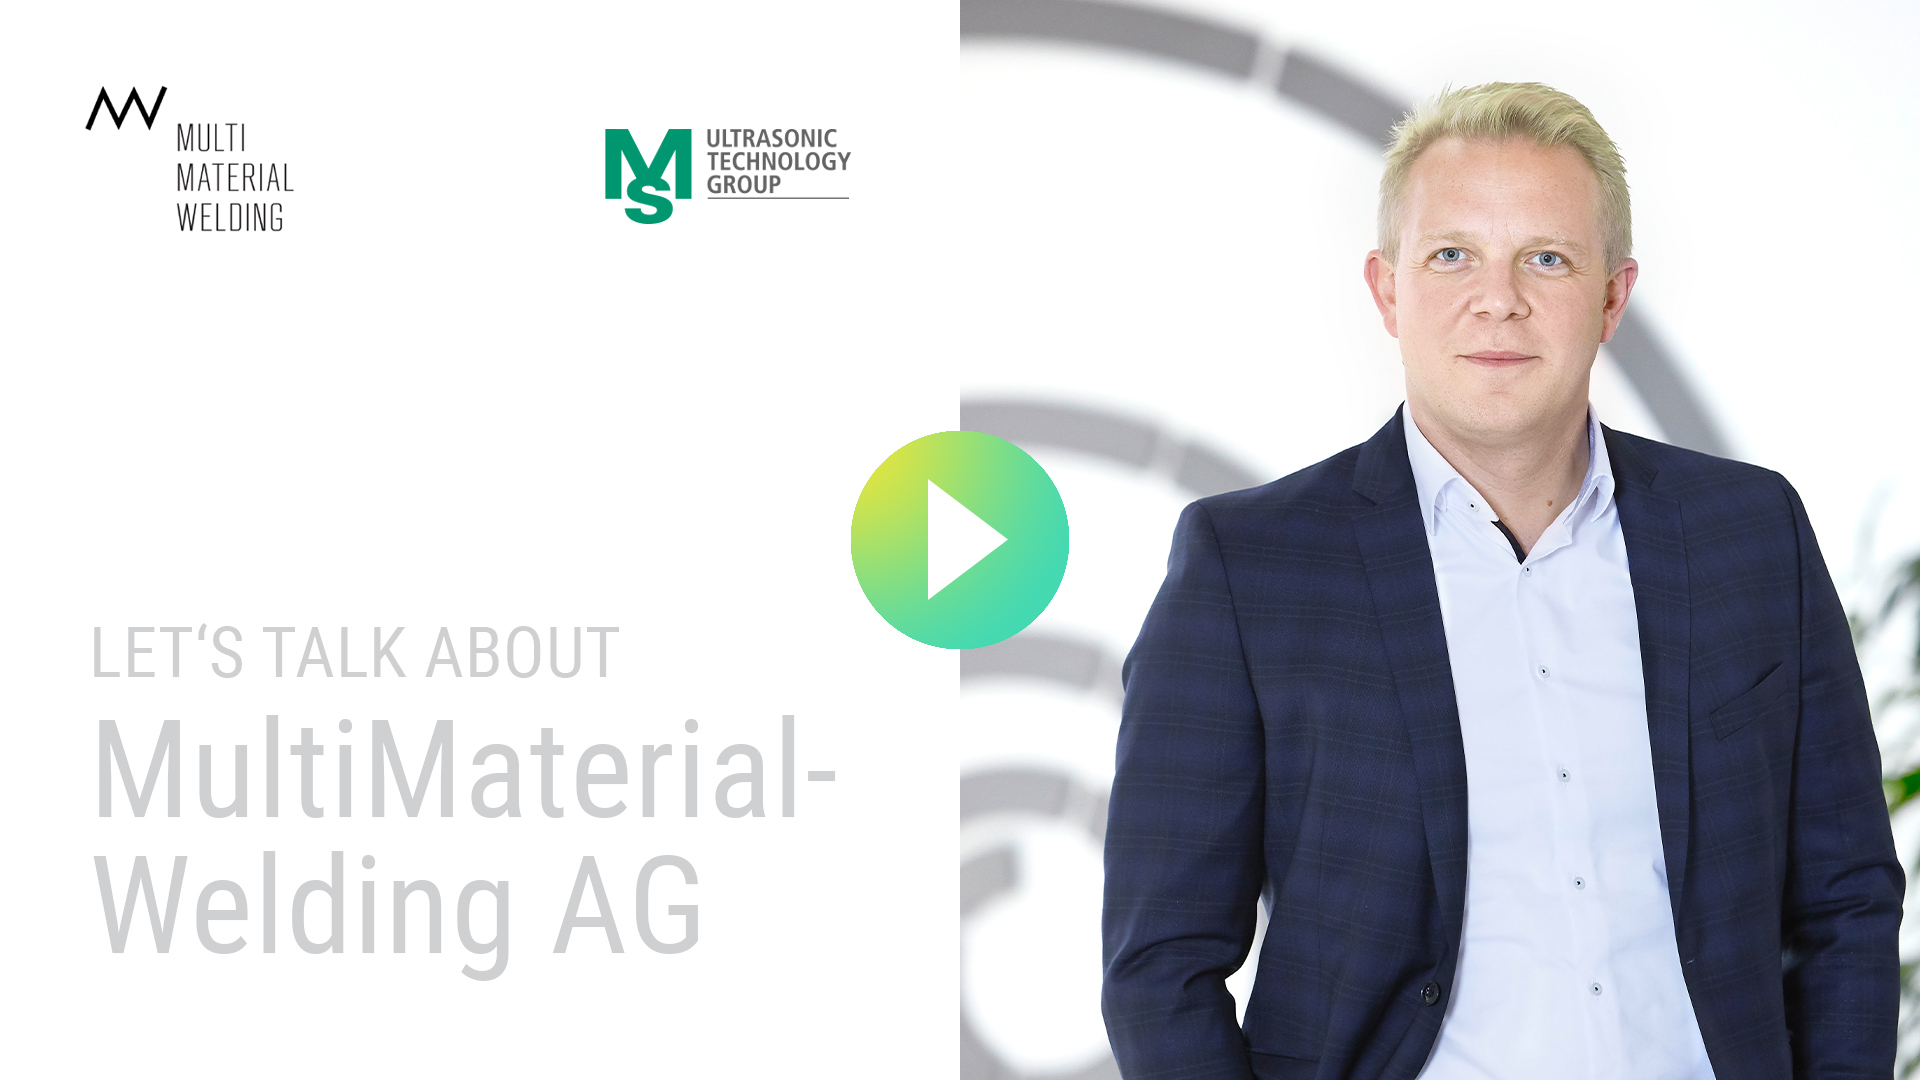 Andreas Marquart, MS Ultrasonic Technology Group, Let's talk about, LightWWeight-Technologie, Multi MaterialWelding Technology AG